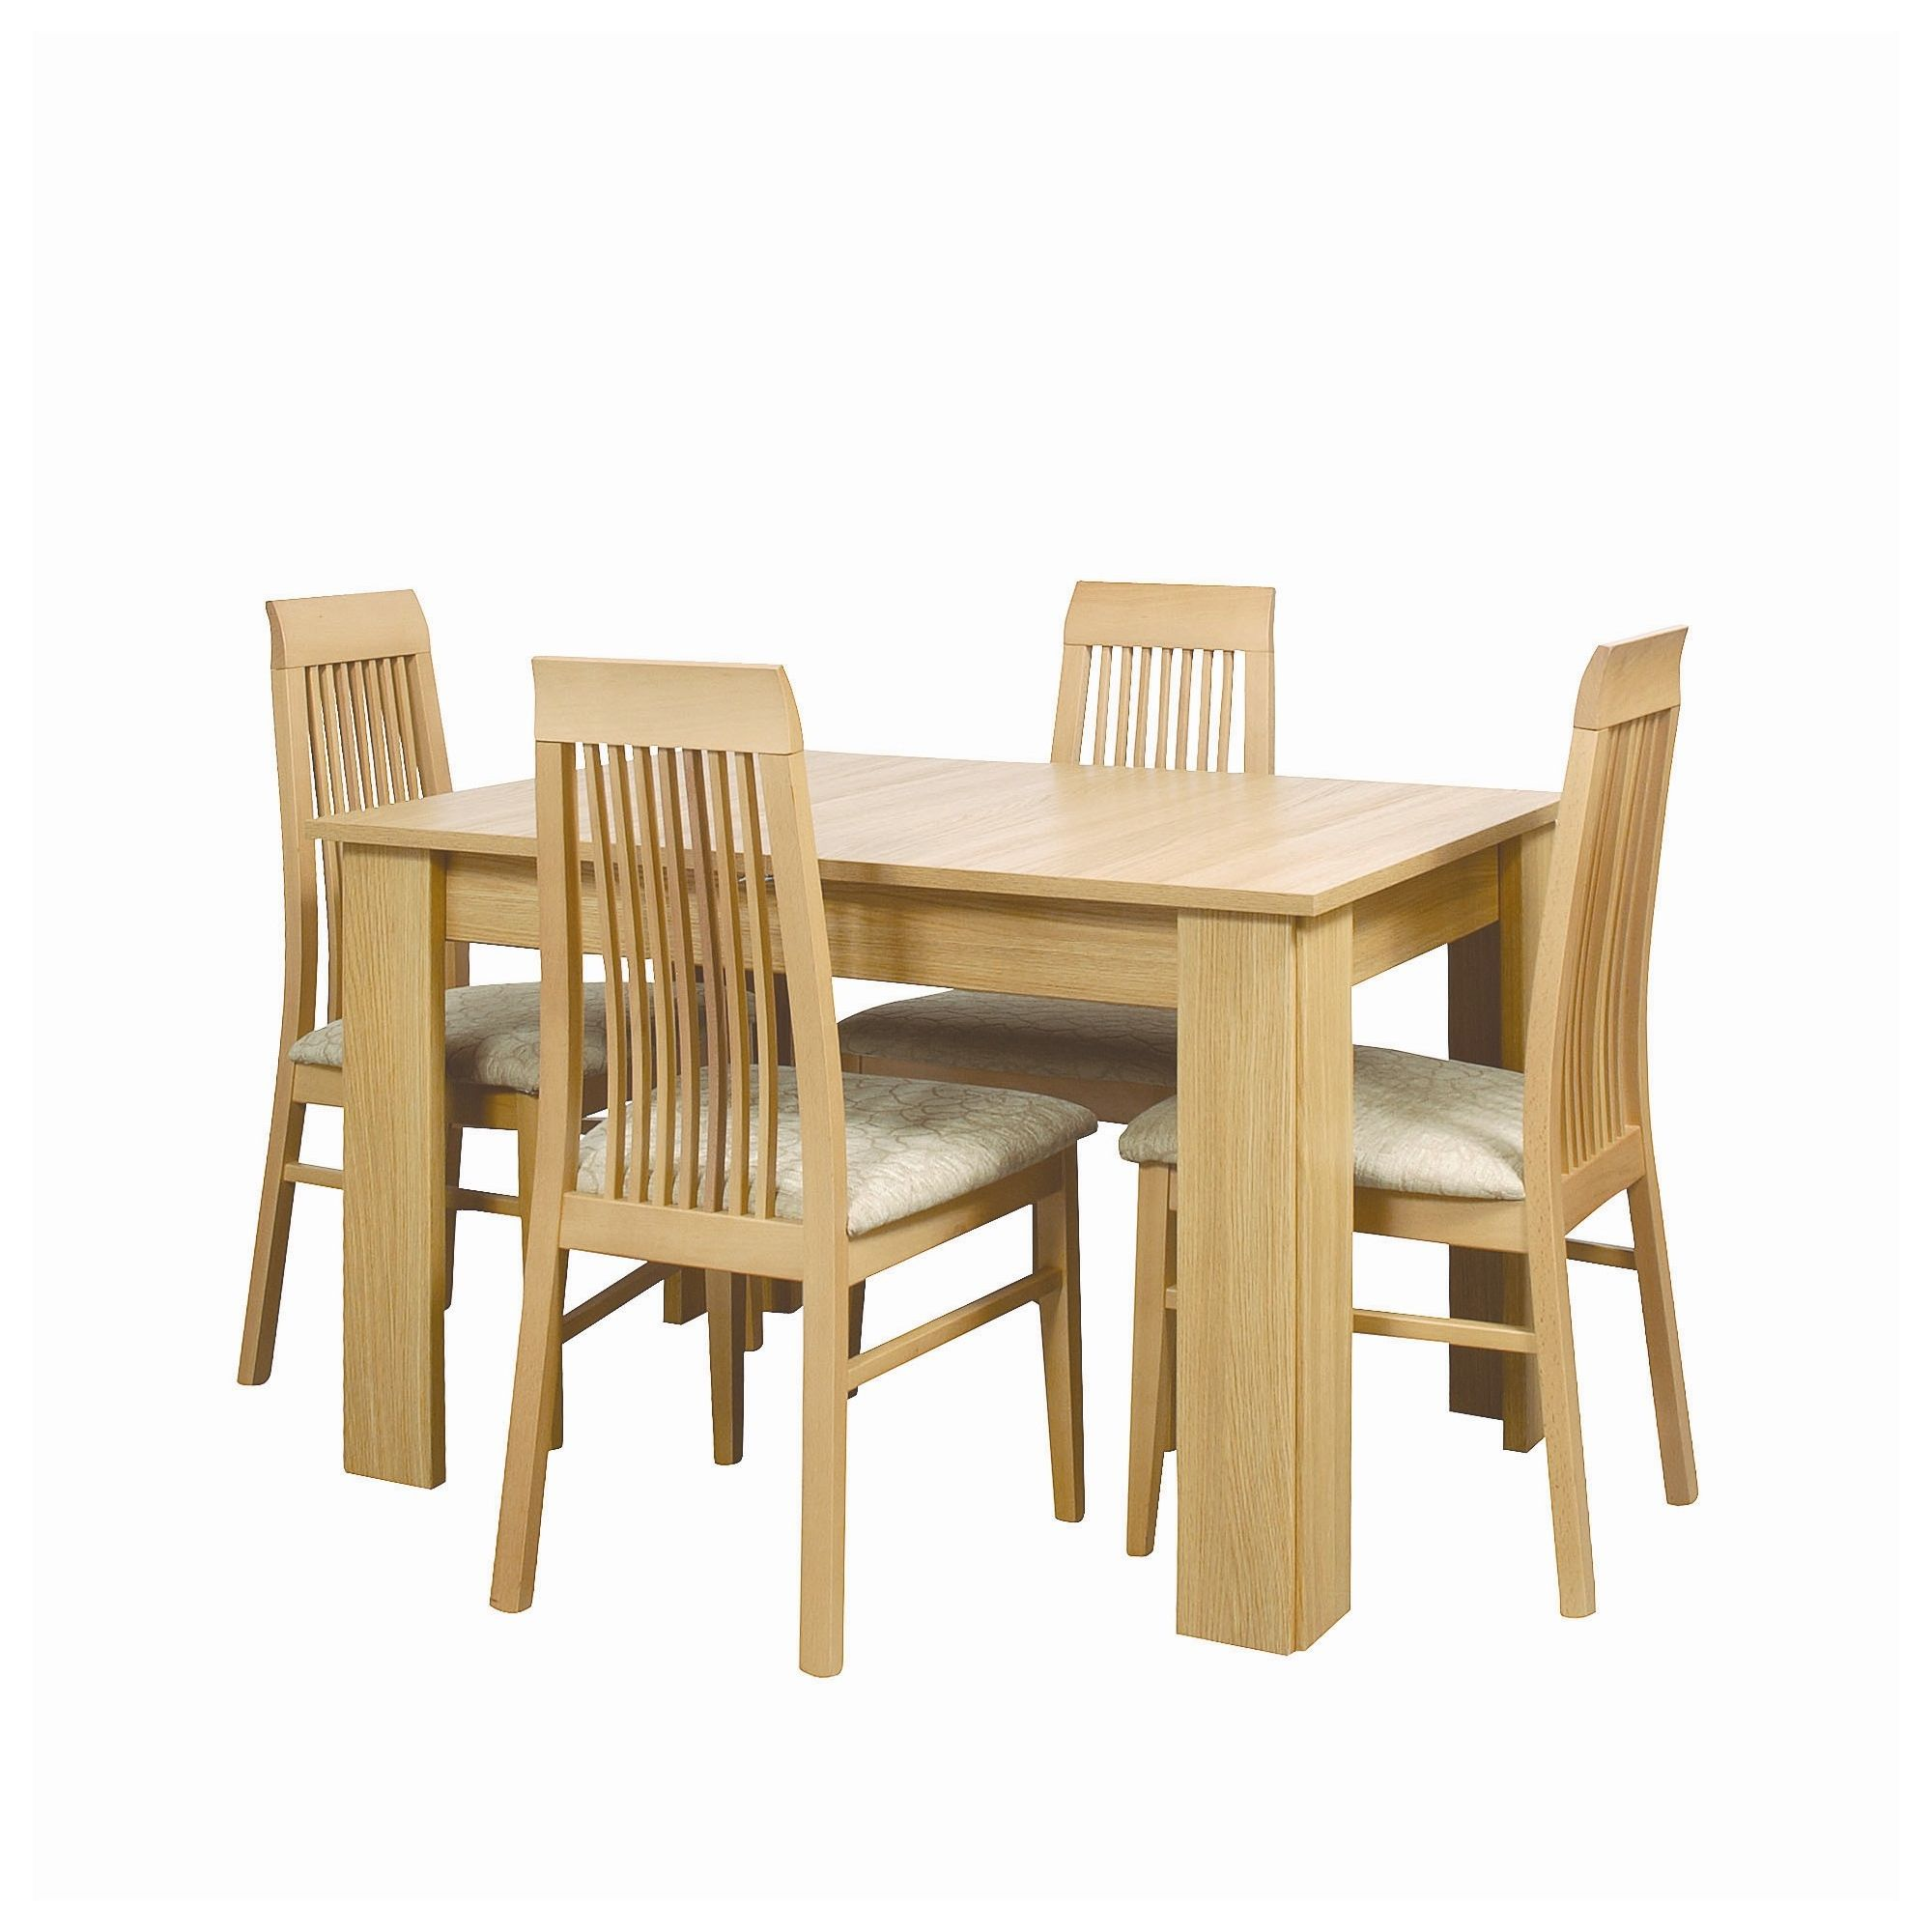 Other Caxton Huxley Dining Table Set with 4 Slatted Back Chairs in Light Oak